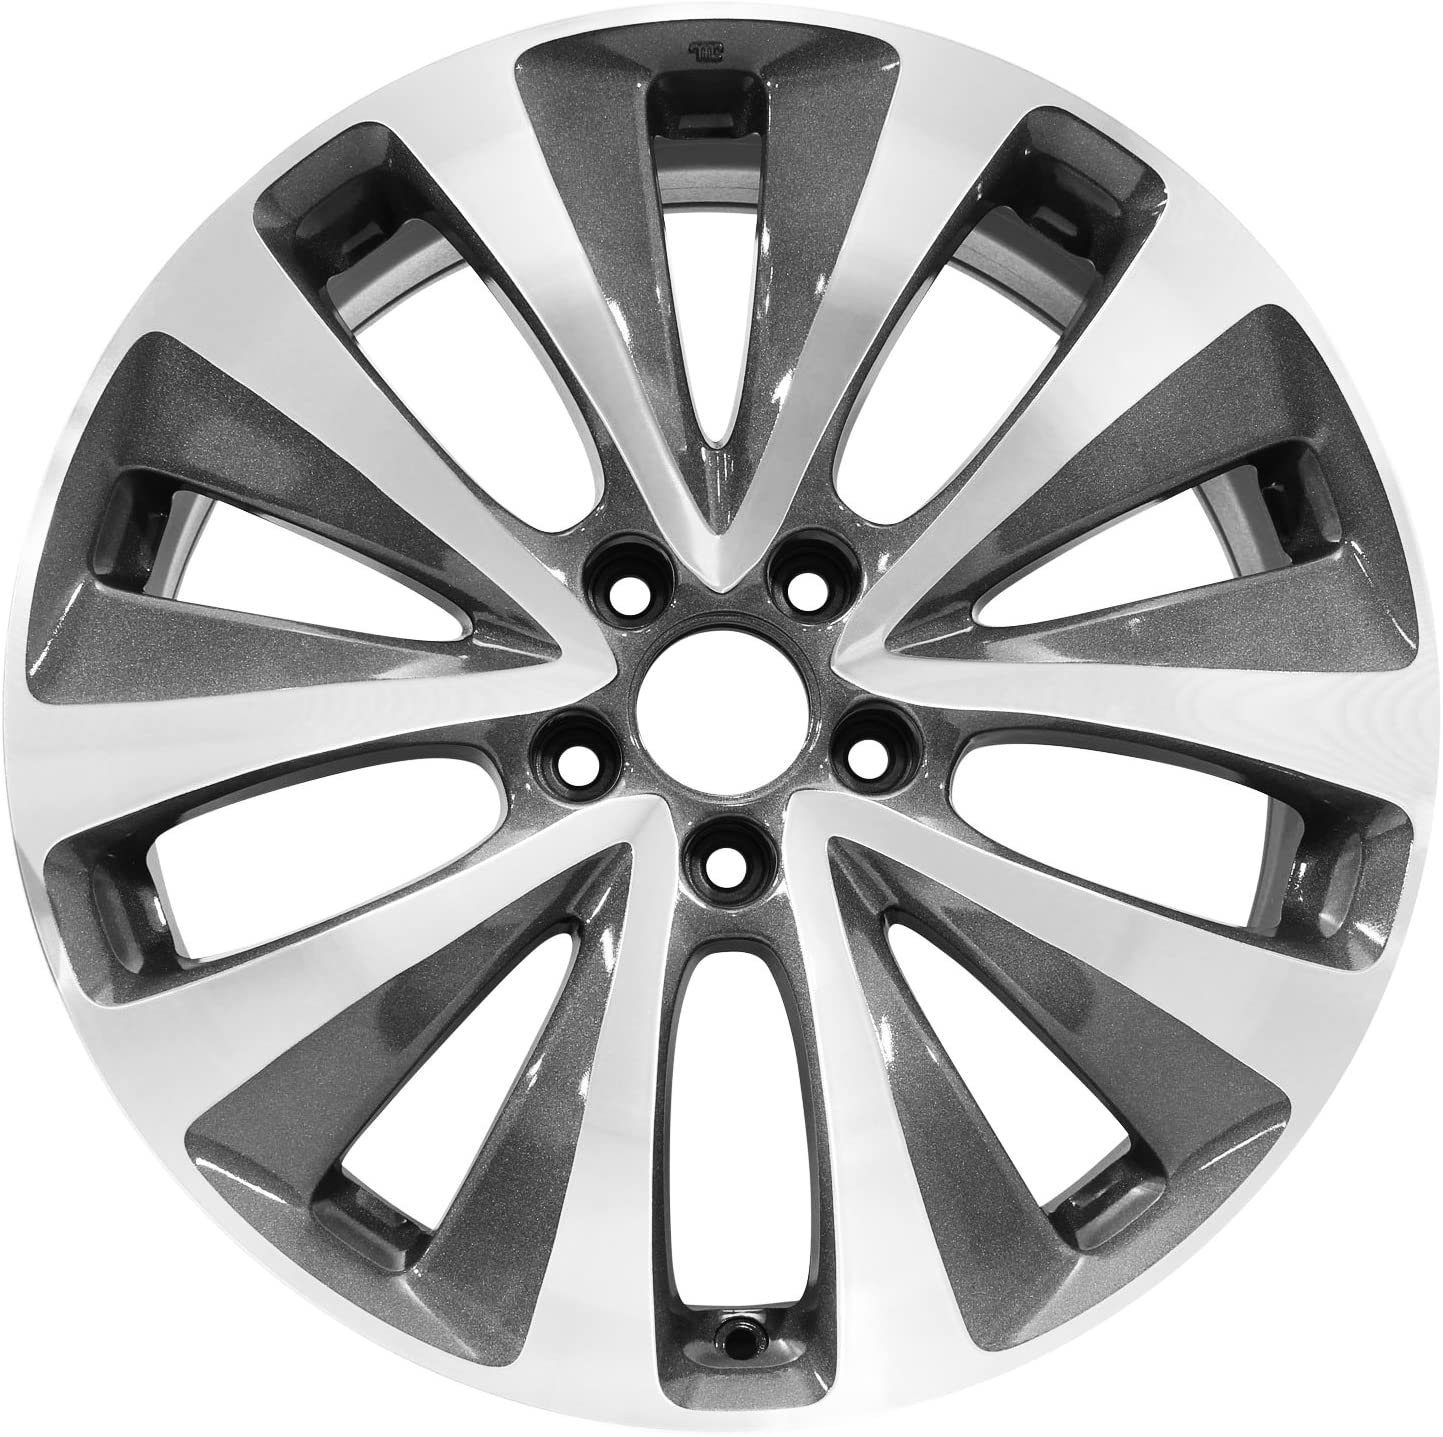 Auto Rim Shop Brand New 19 Replacement Wheel for Acura MDX 2014 2015 2016